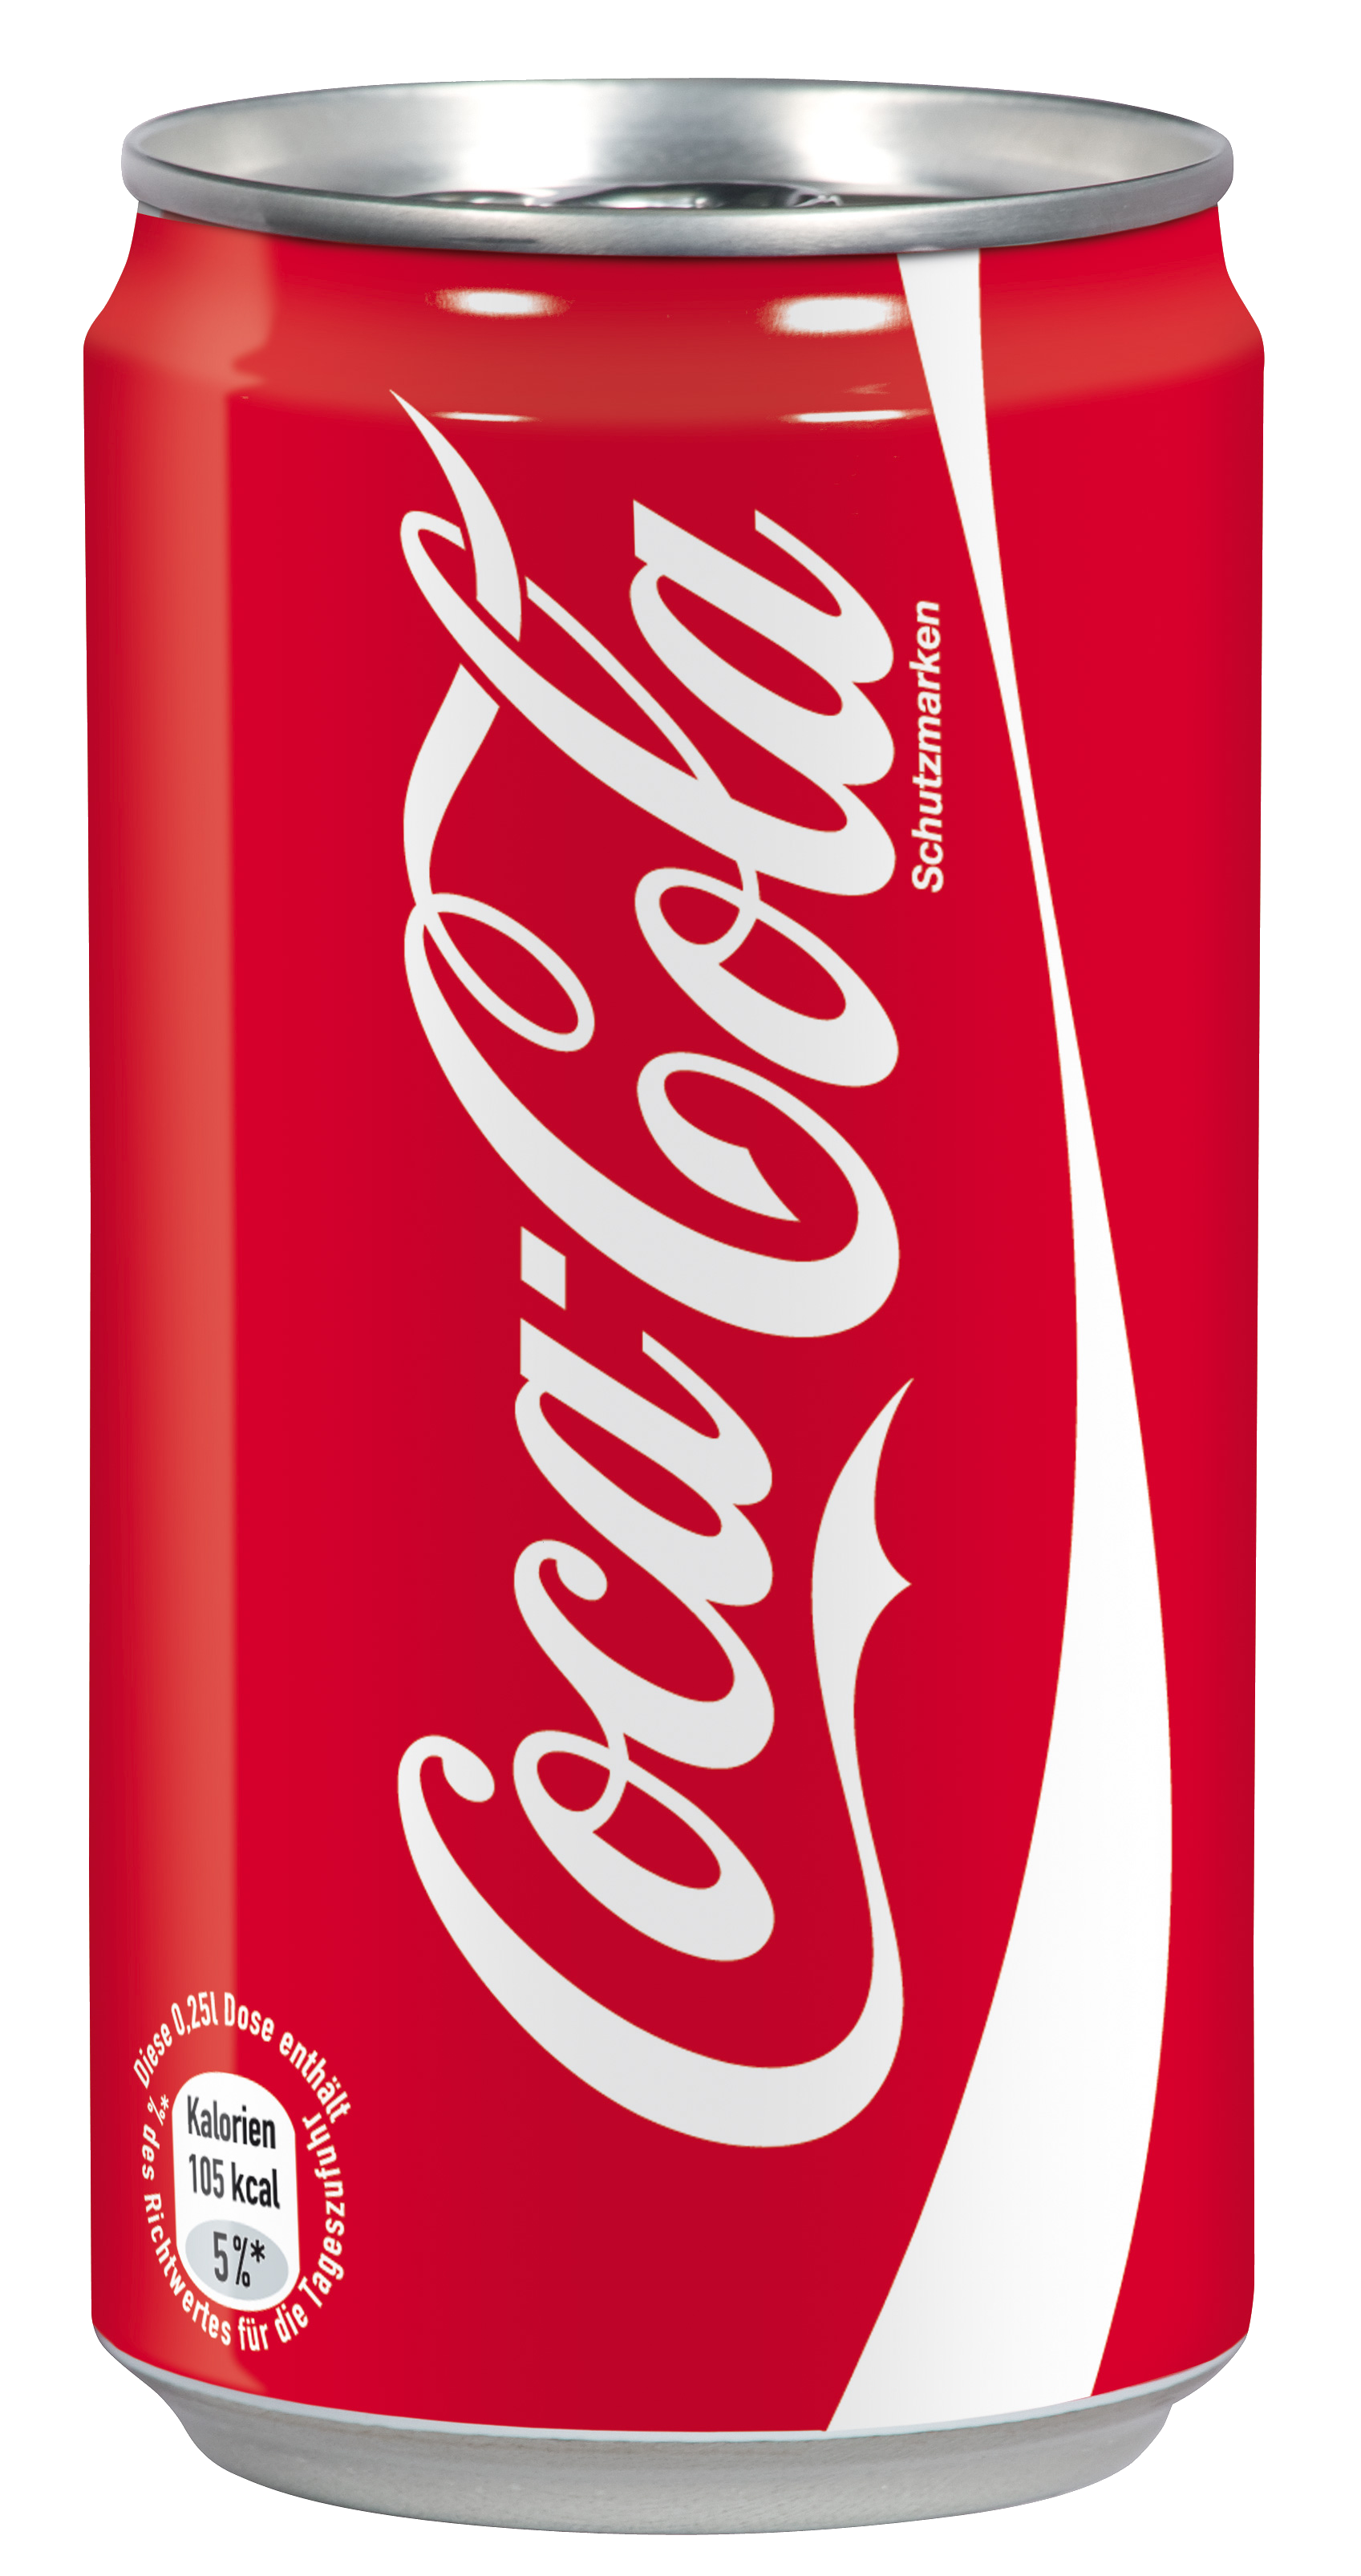 Coca cola can clipart vector download Pin by Mandy Wessels on ClipArt in 2019 | Coke cans, Coca ... vector download